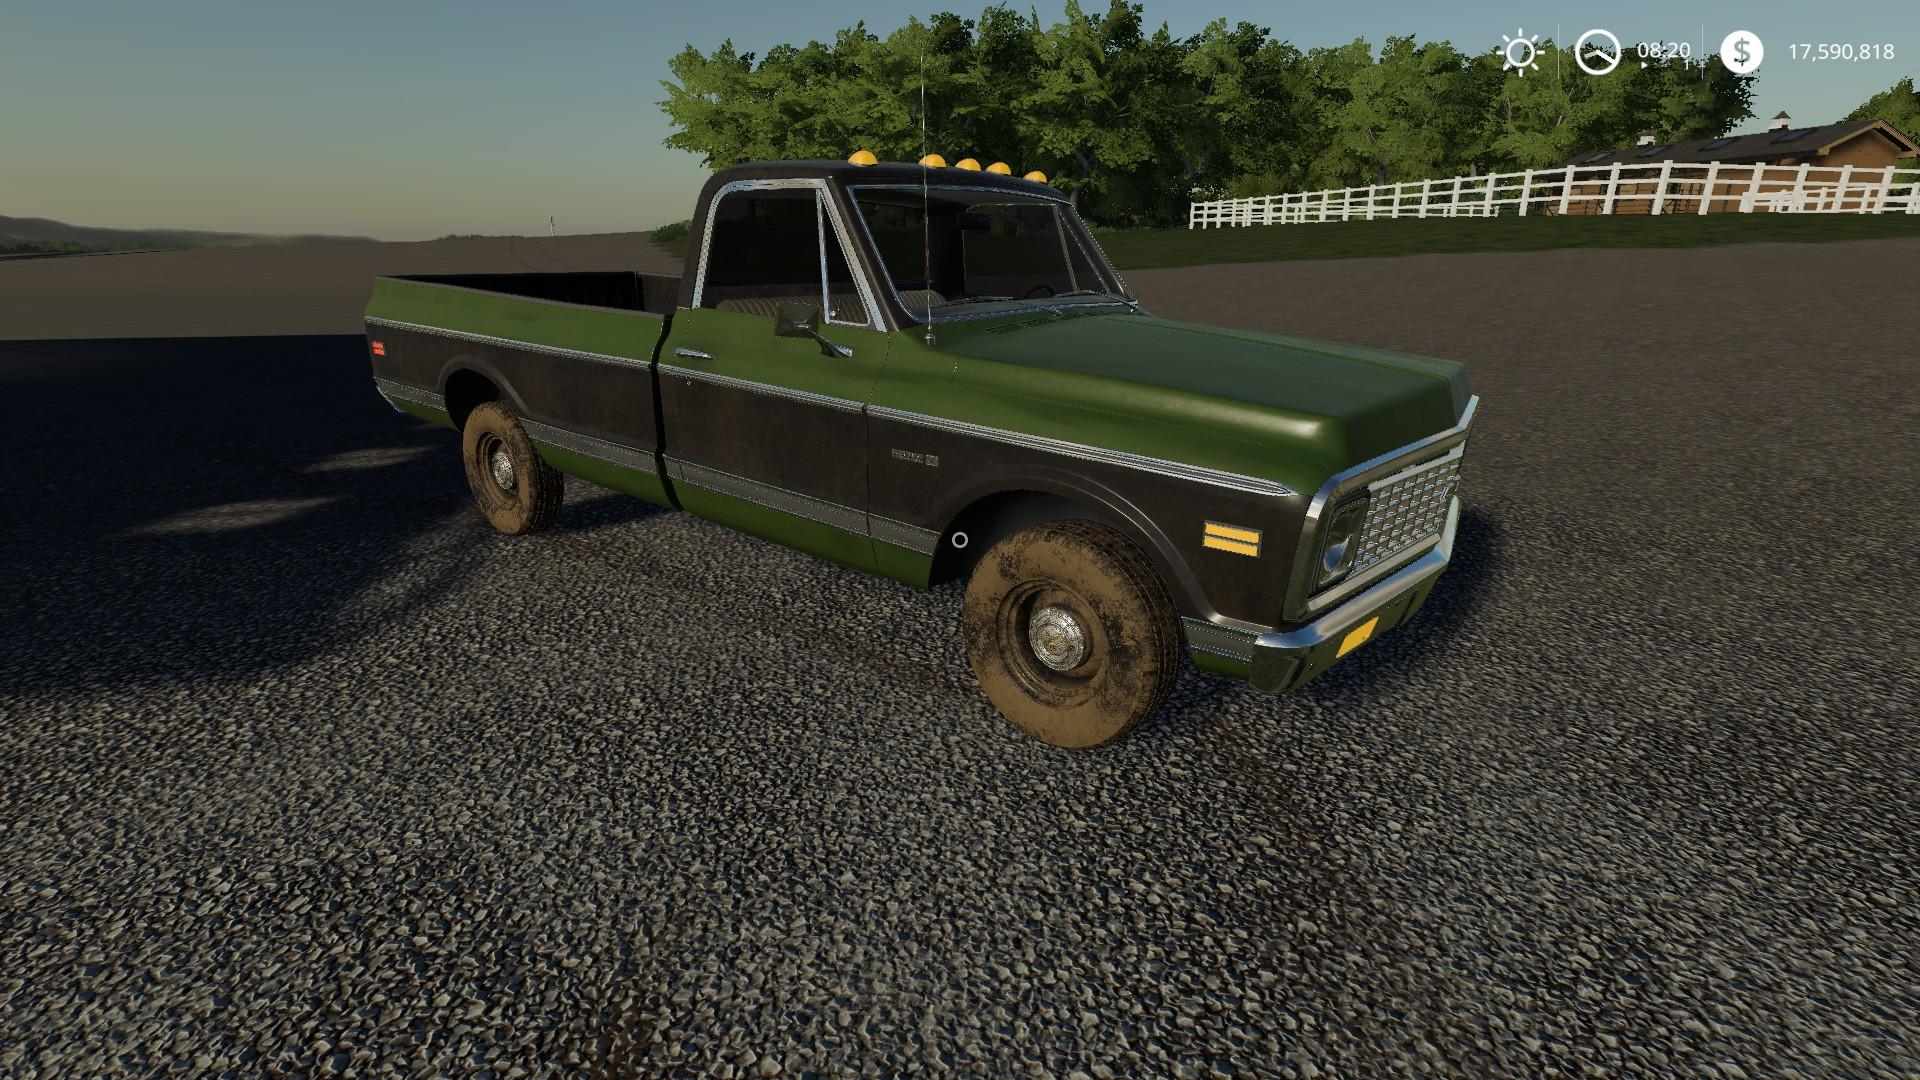 71 Chevy Long Bed v 1.0